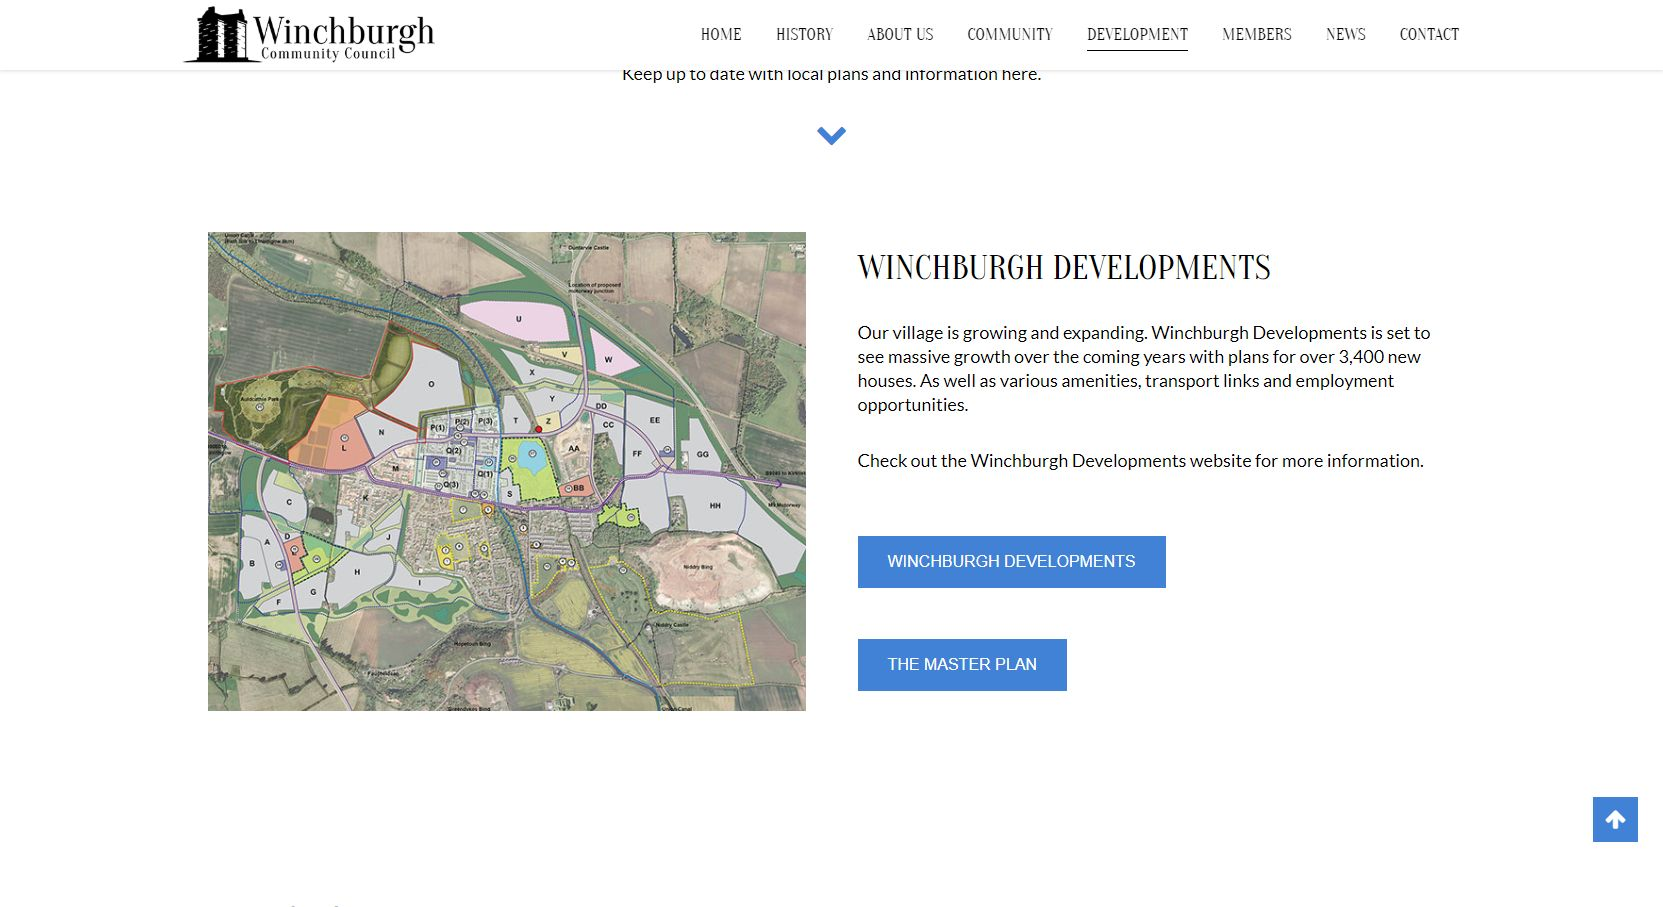 Winchburgh Community Council Development Map